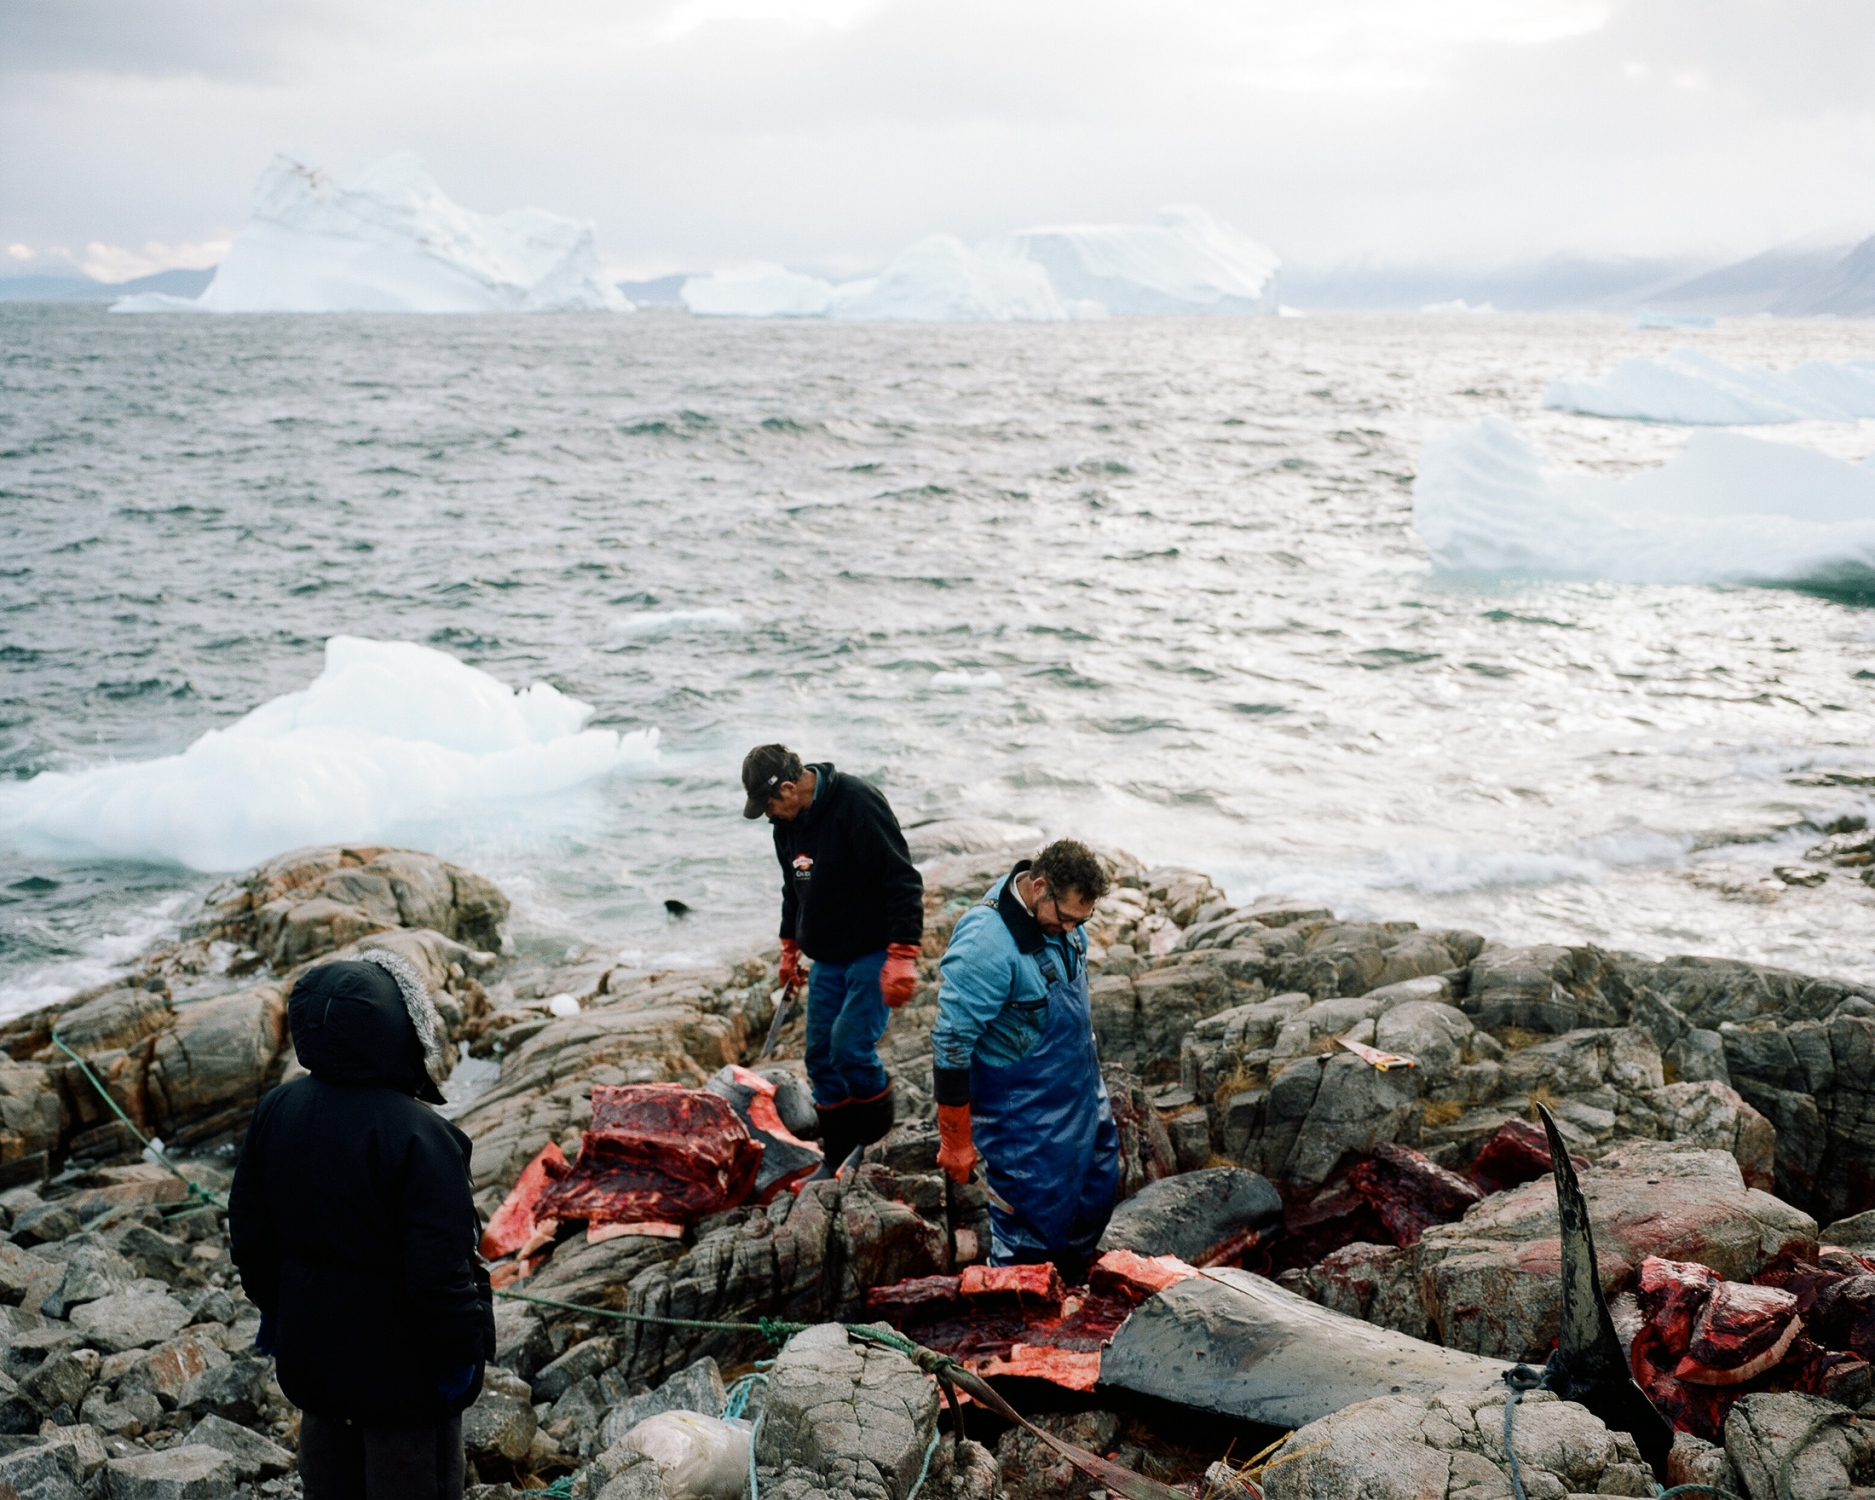 Pilot whales has been hunted then gathered toward the shore of Uummannaq to be slaughtered. Uummannaq is a hunter and fishermen village inhabited by 1282 souls (2013) and located 590 km above the polar circle on the Uummannaq island. Most of the young people do not want to become a fisherman nor a hunter.